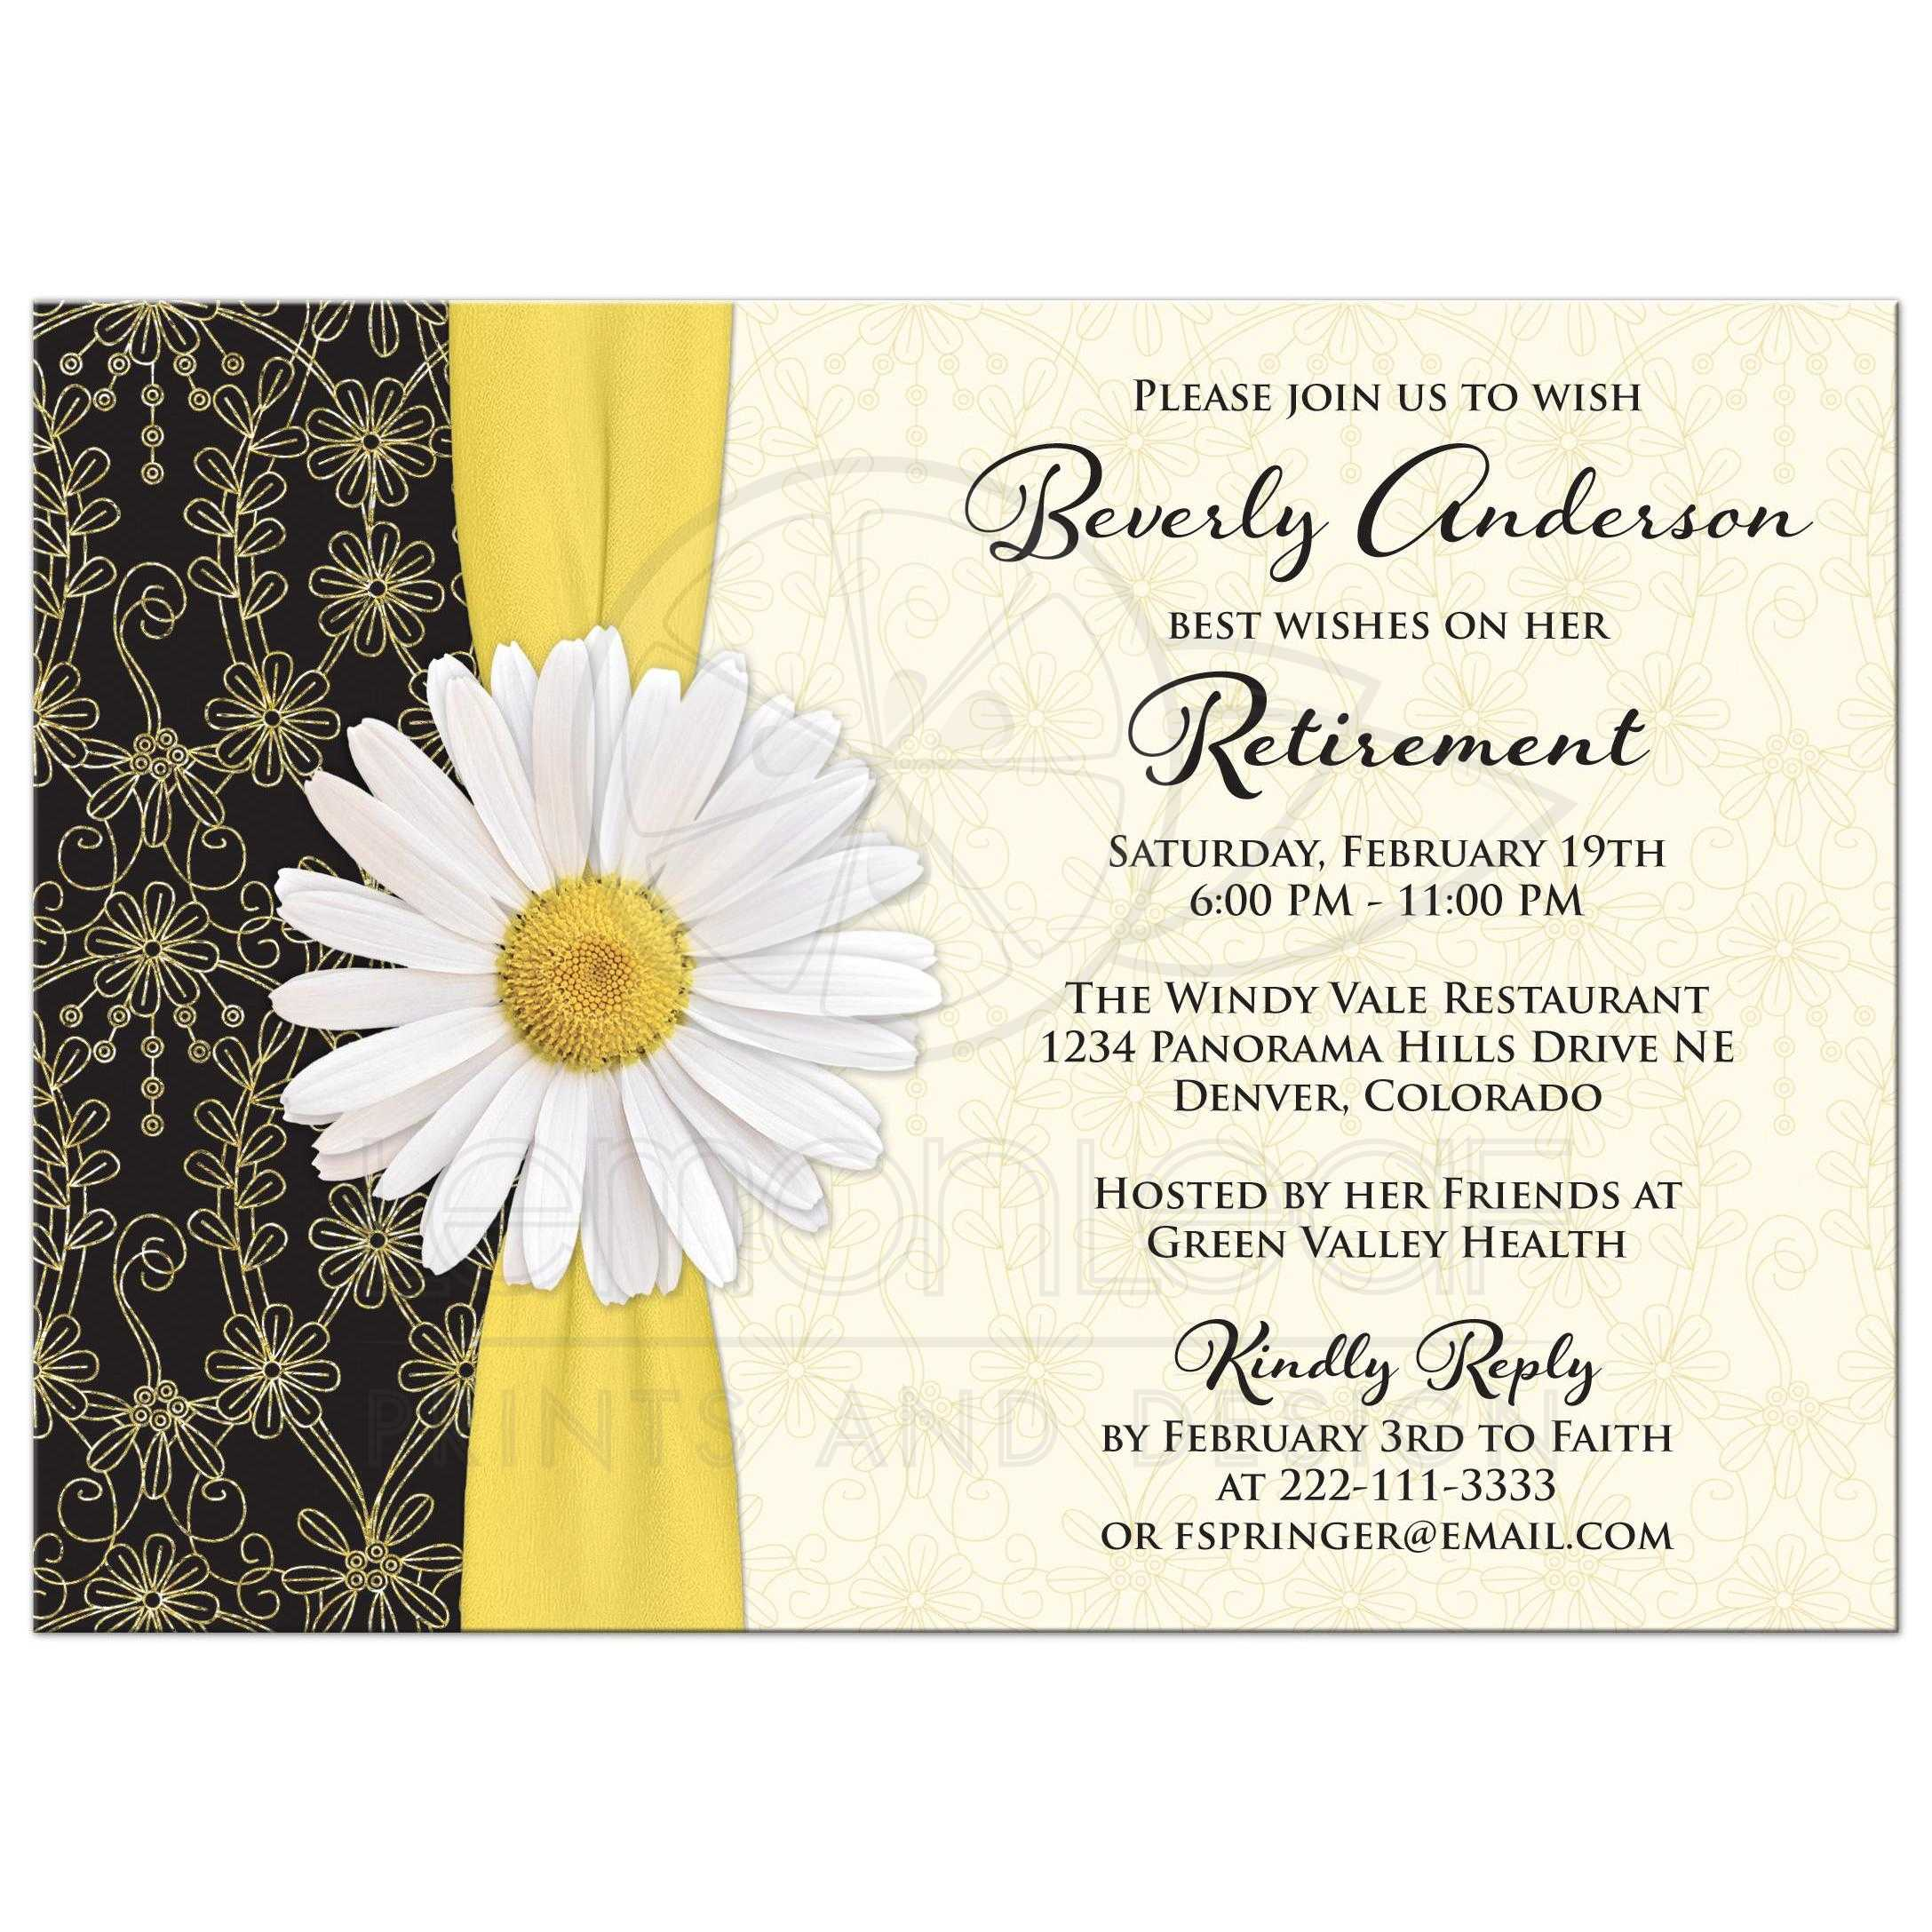 Retirement Party Invitation – Flower Party Invitations